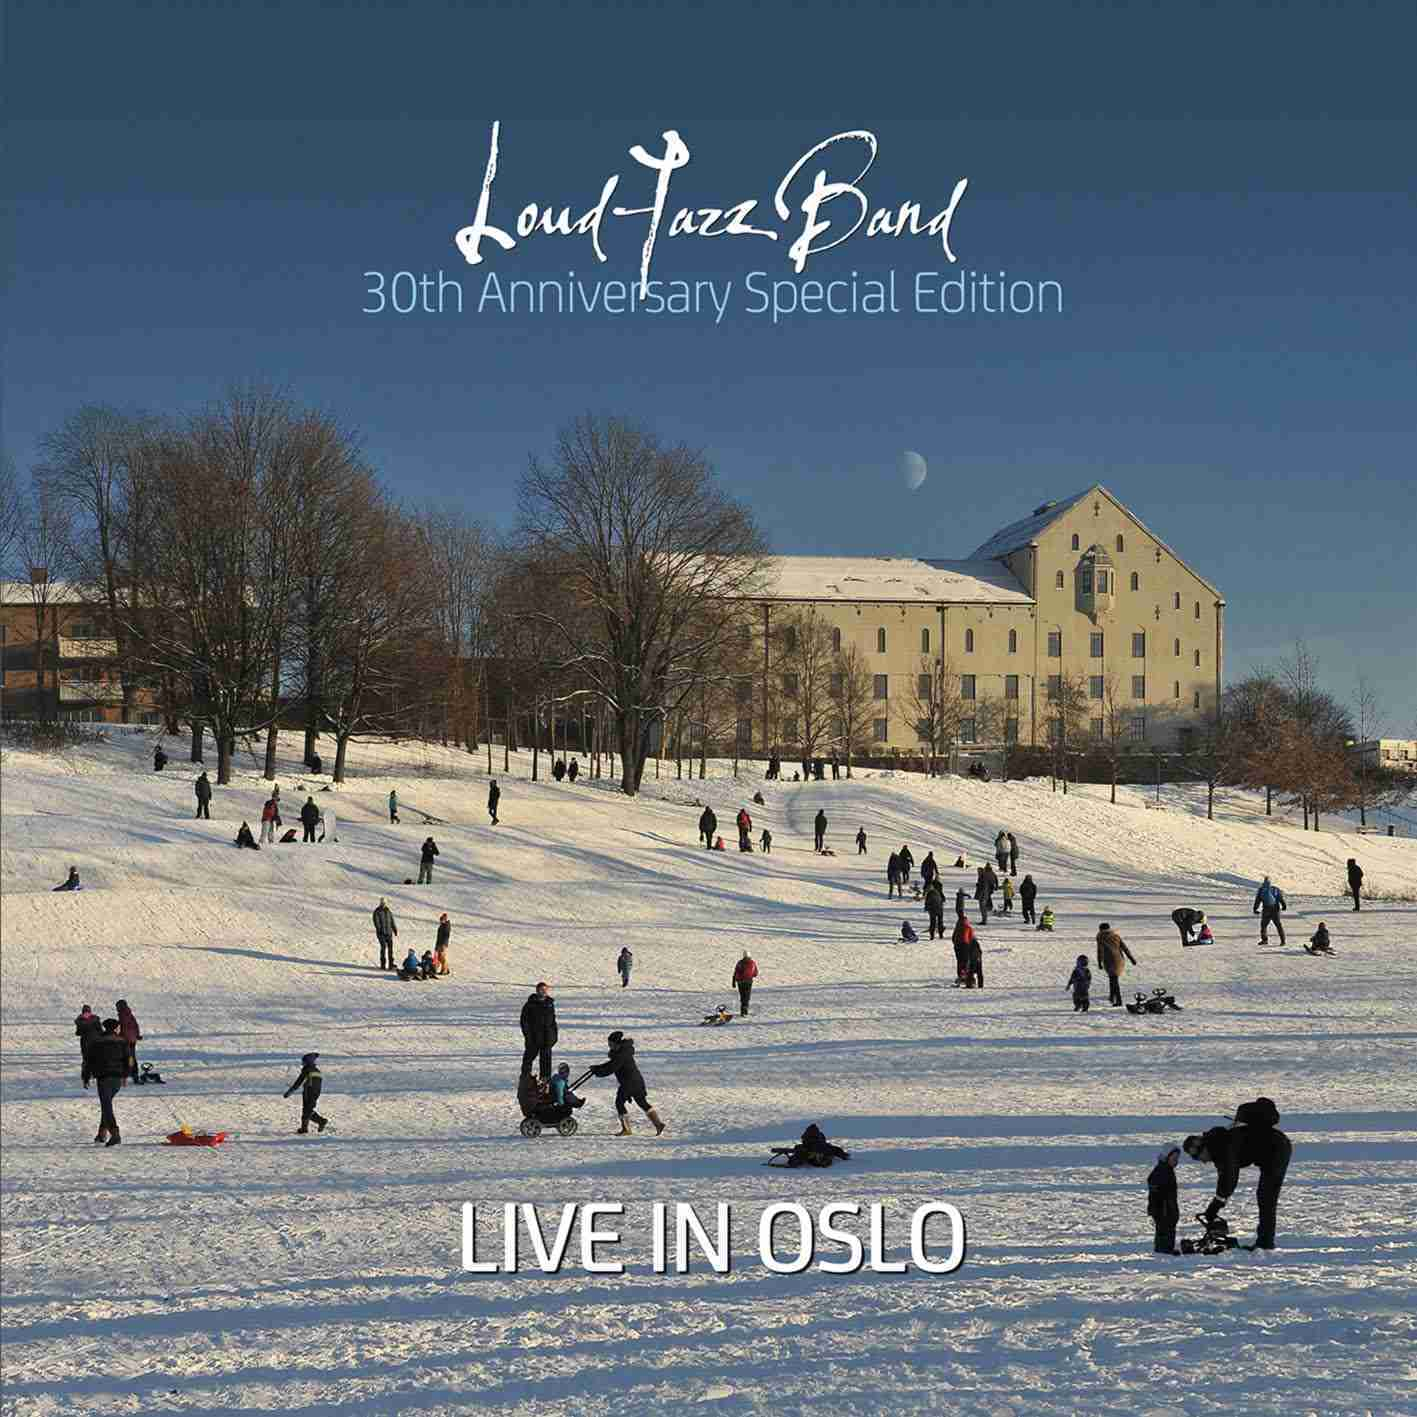 Live in Oslo - Loud Jazz Band